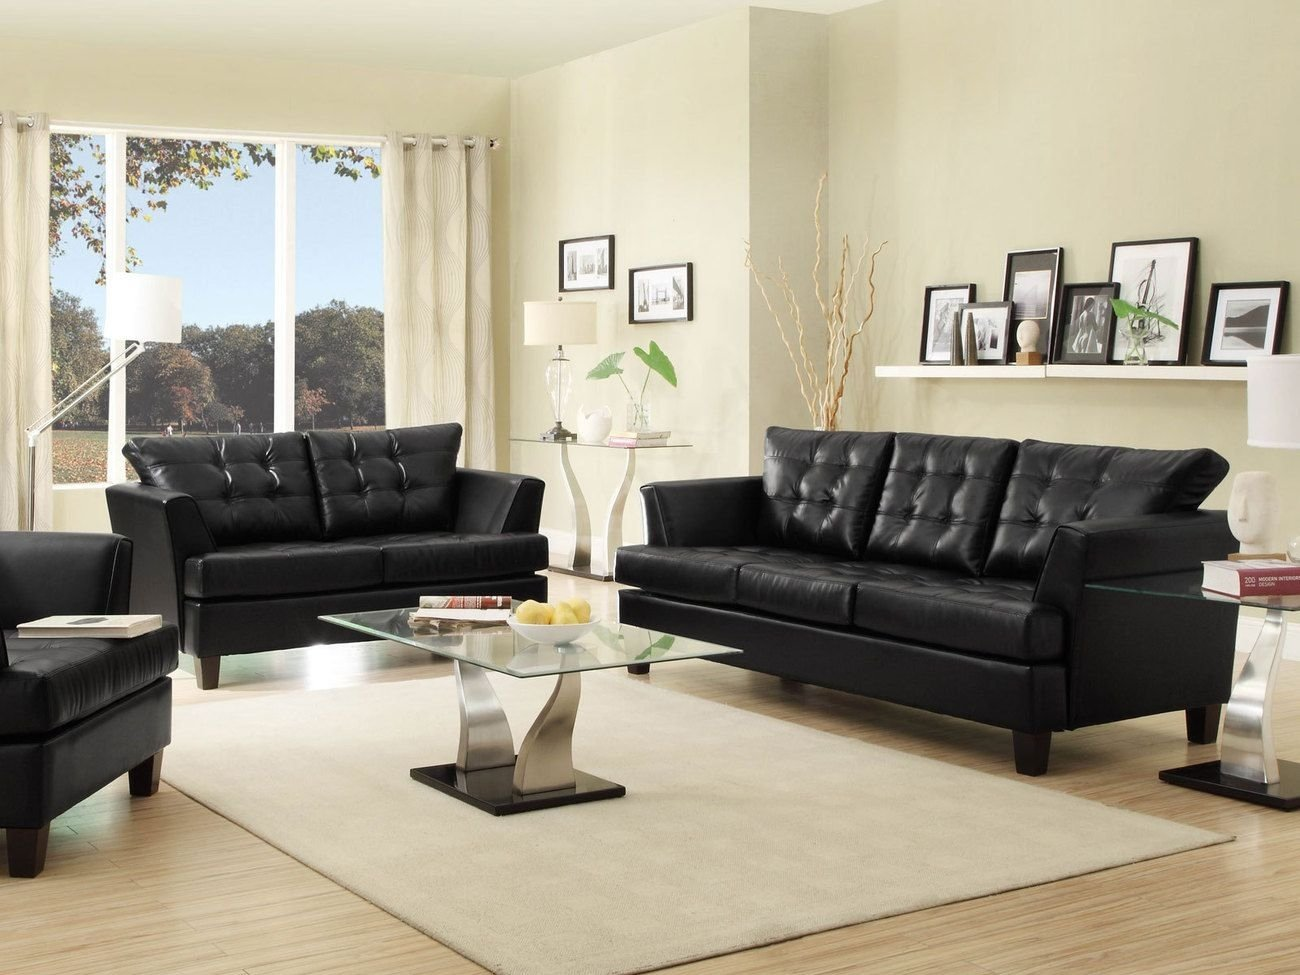 10 Fashionable Black Couch Living Room Ideas iris modern black faux leather sofa couch loveseat set living